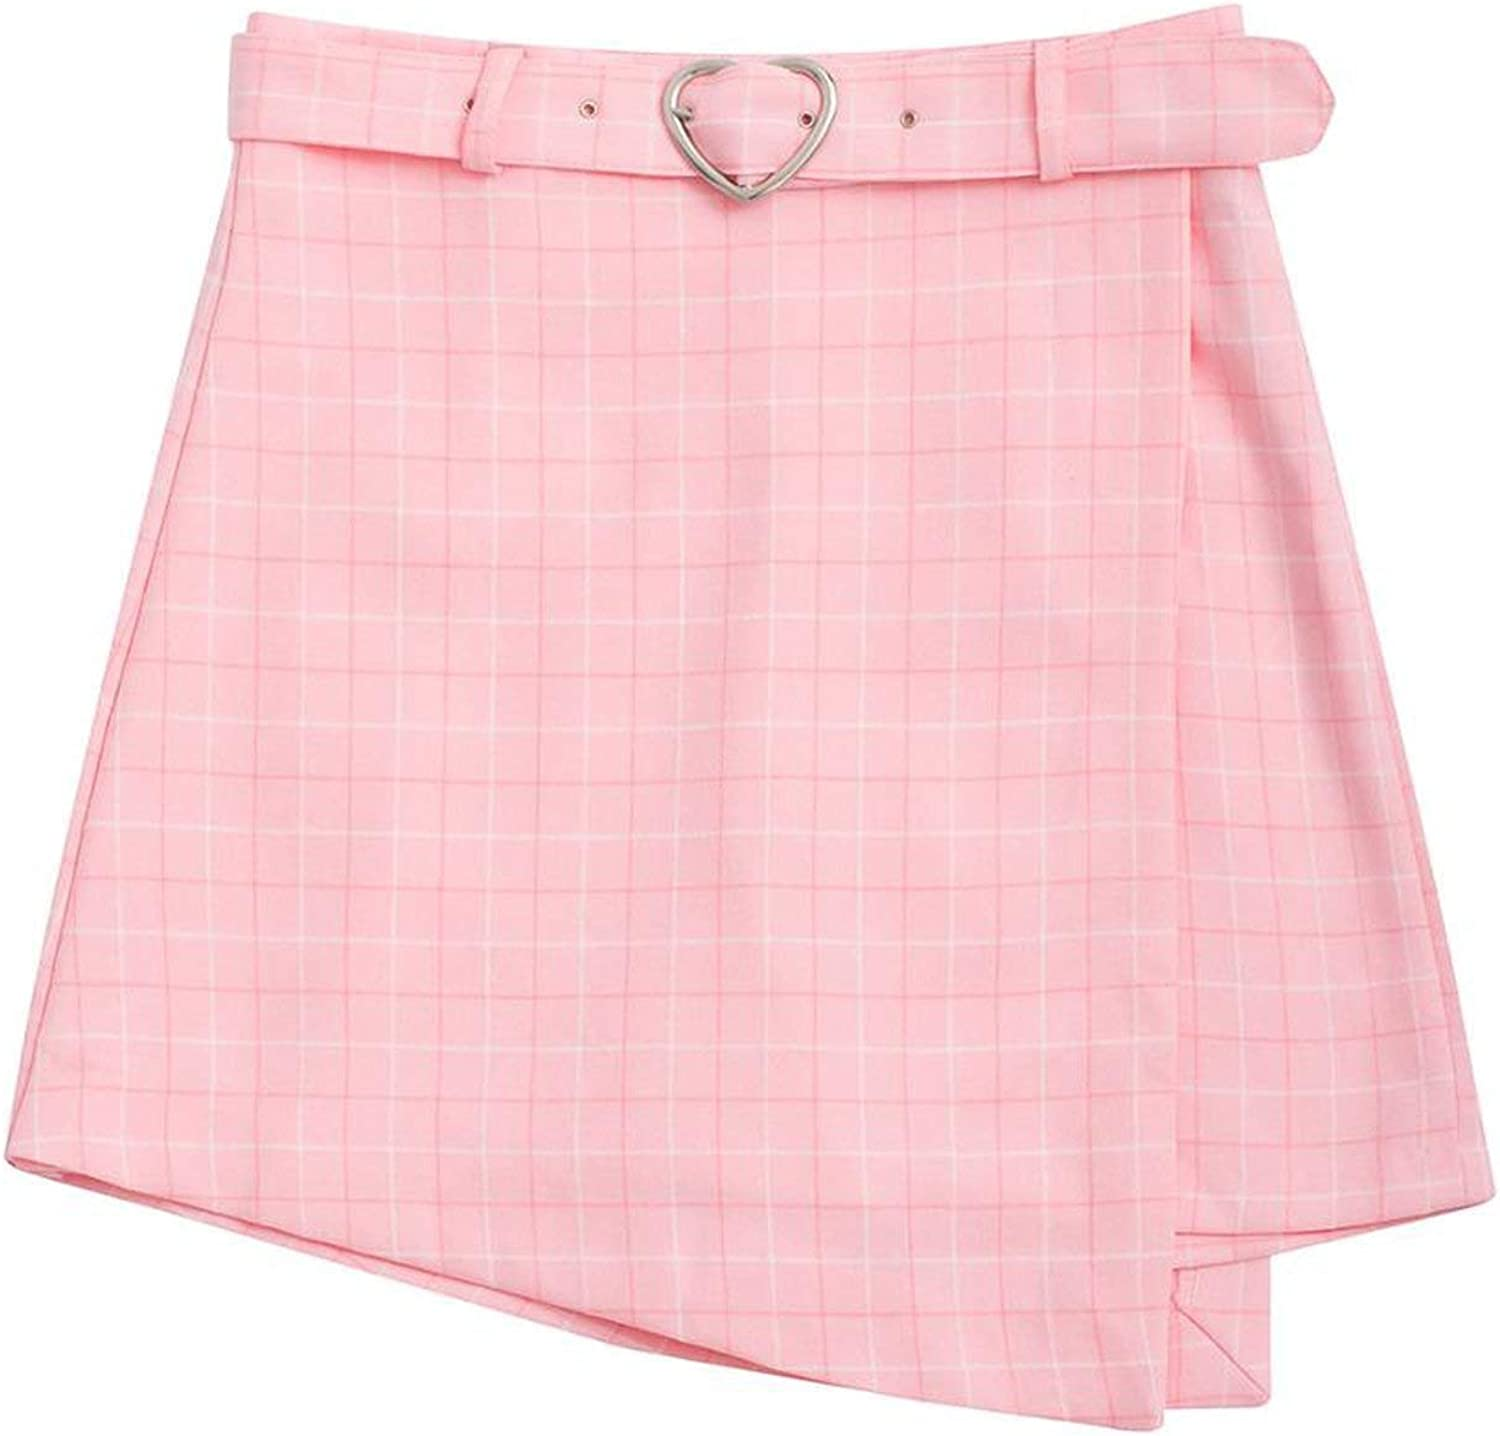 HANBINGPO Summer Waist Fashion Sweet Sashes Women Shorts Skirt Slim Shorts Skirts Casual Zipper Plaid Pink bluee Preppy Style